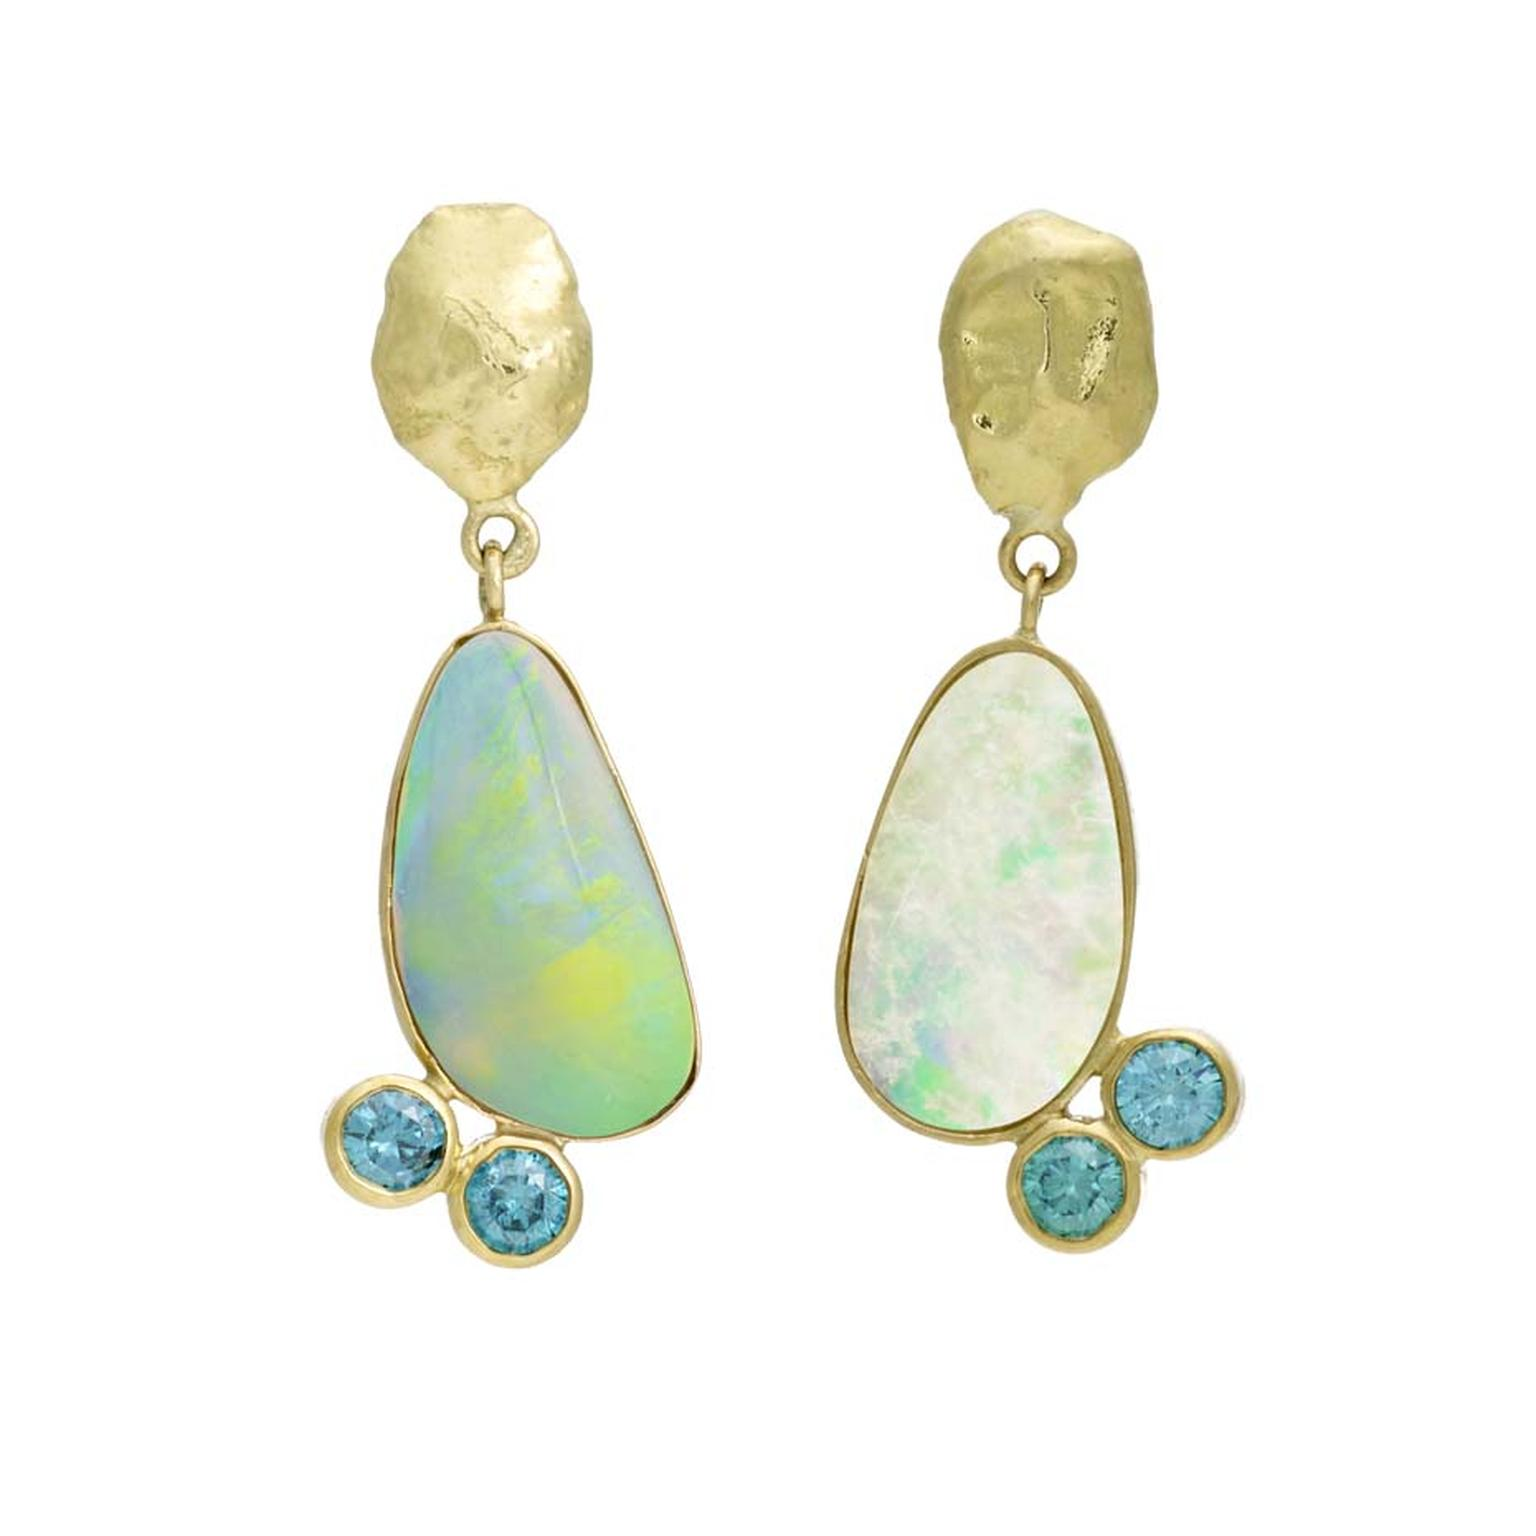 Asymmetric iKuria Australian opal earrings with blue diamonds and recycled yellow gold nuggets.